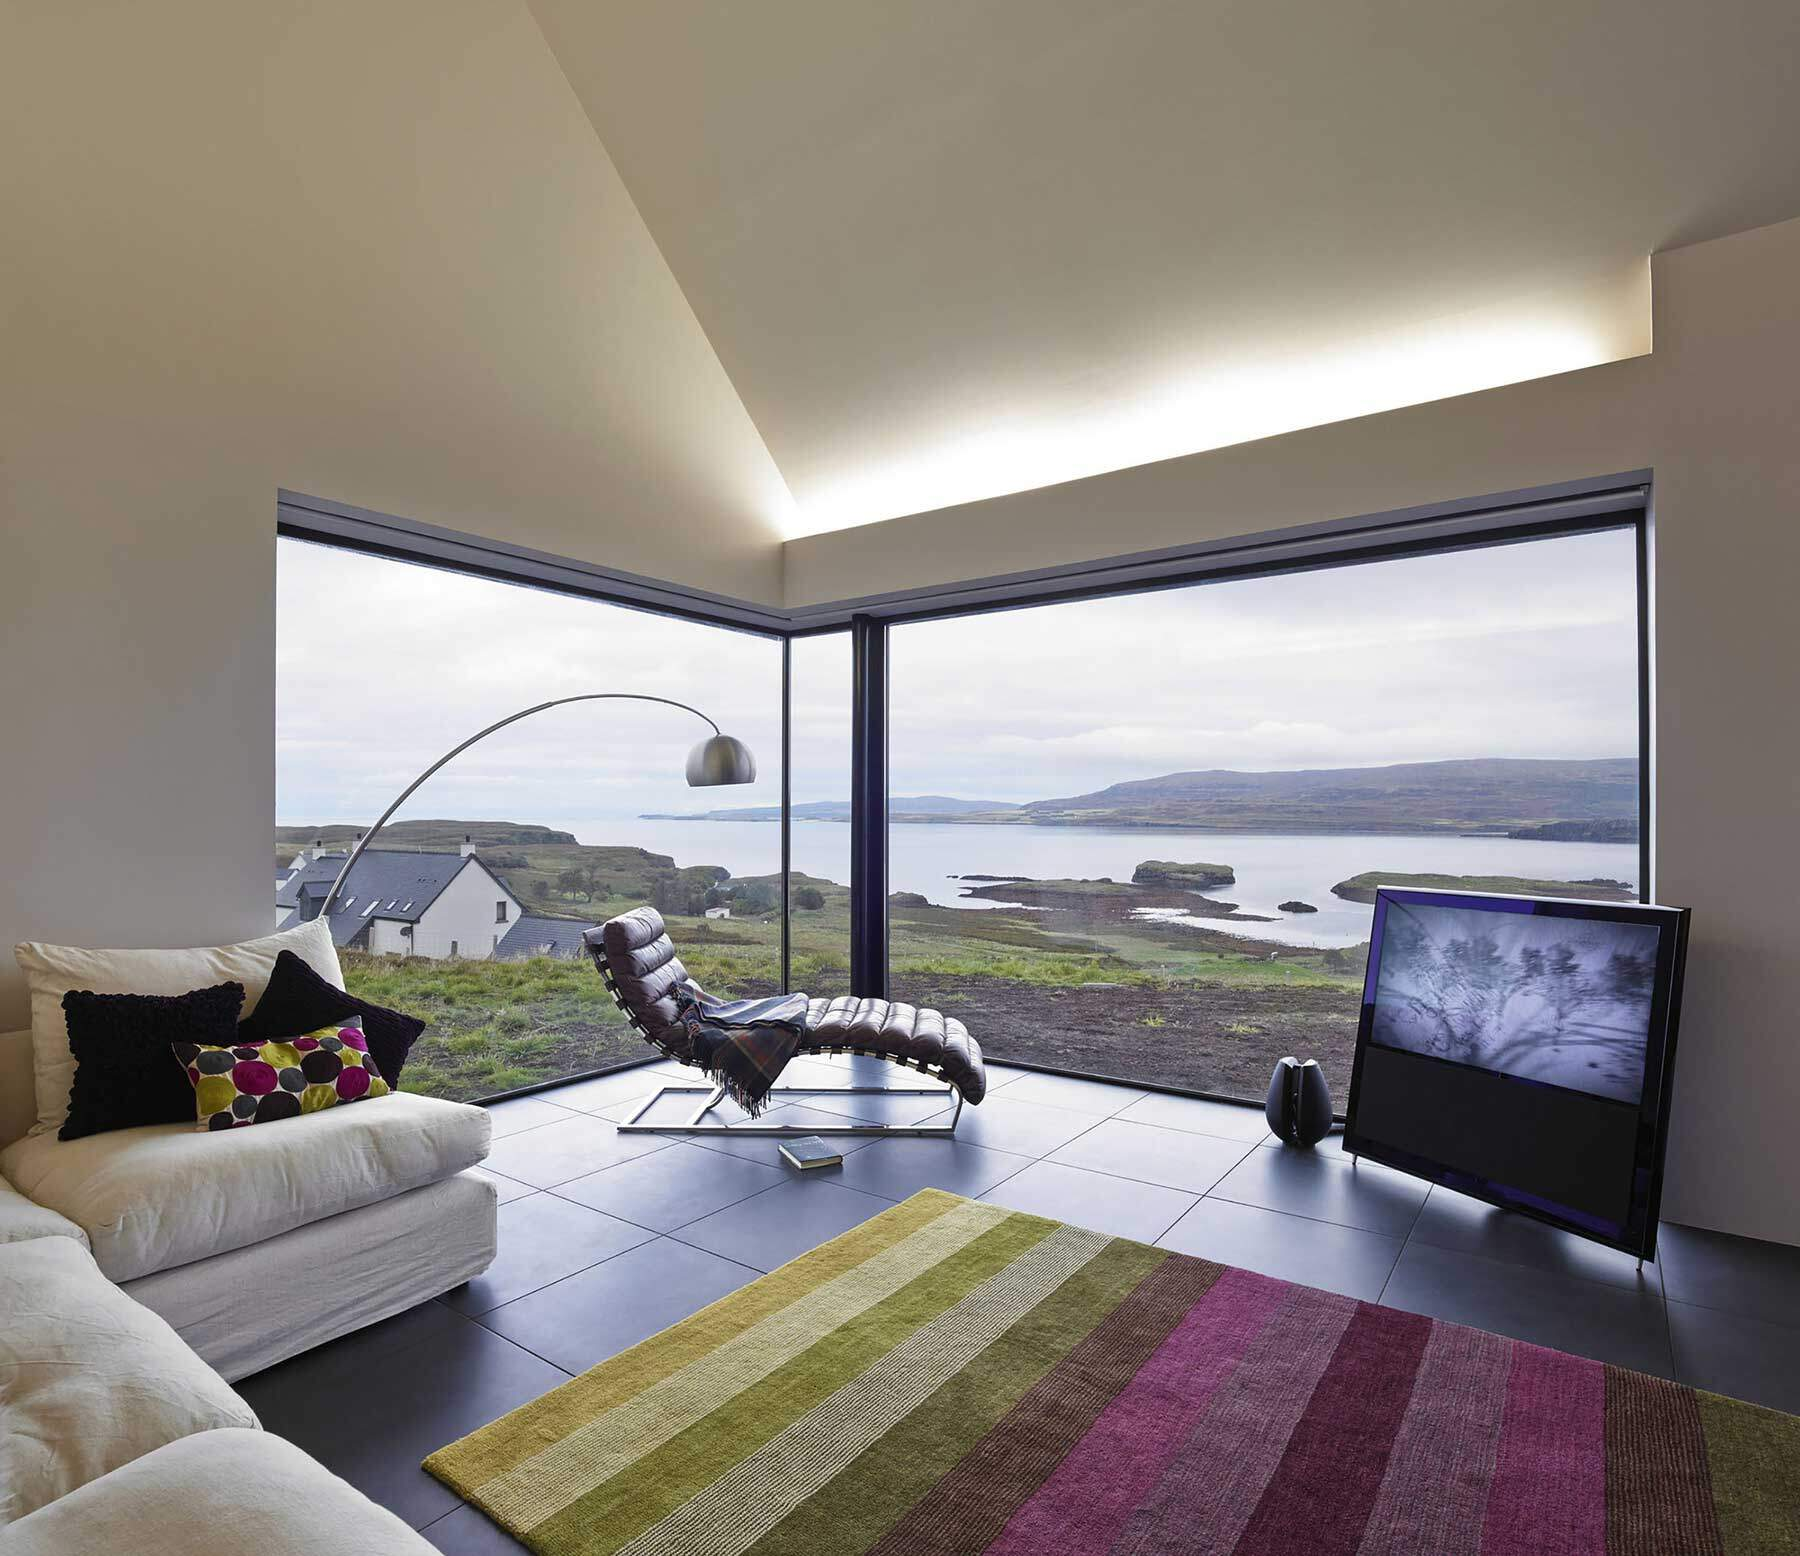 Skye Island house inspired by Scottish farm barns